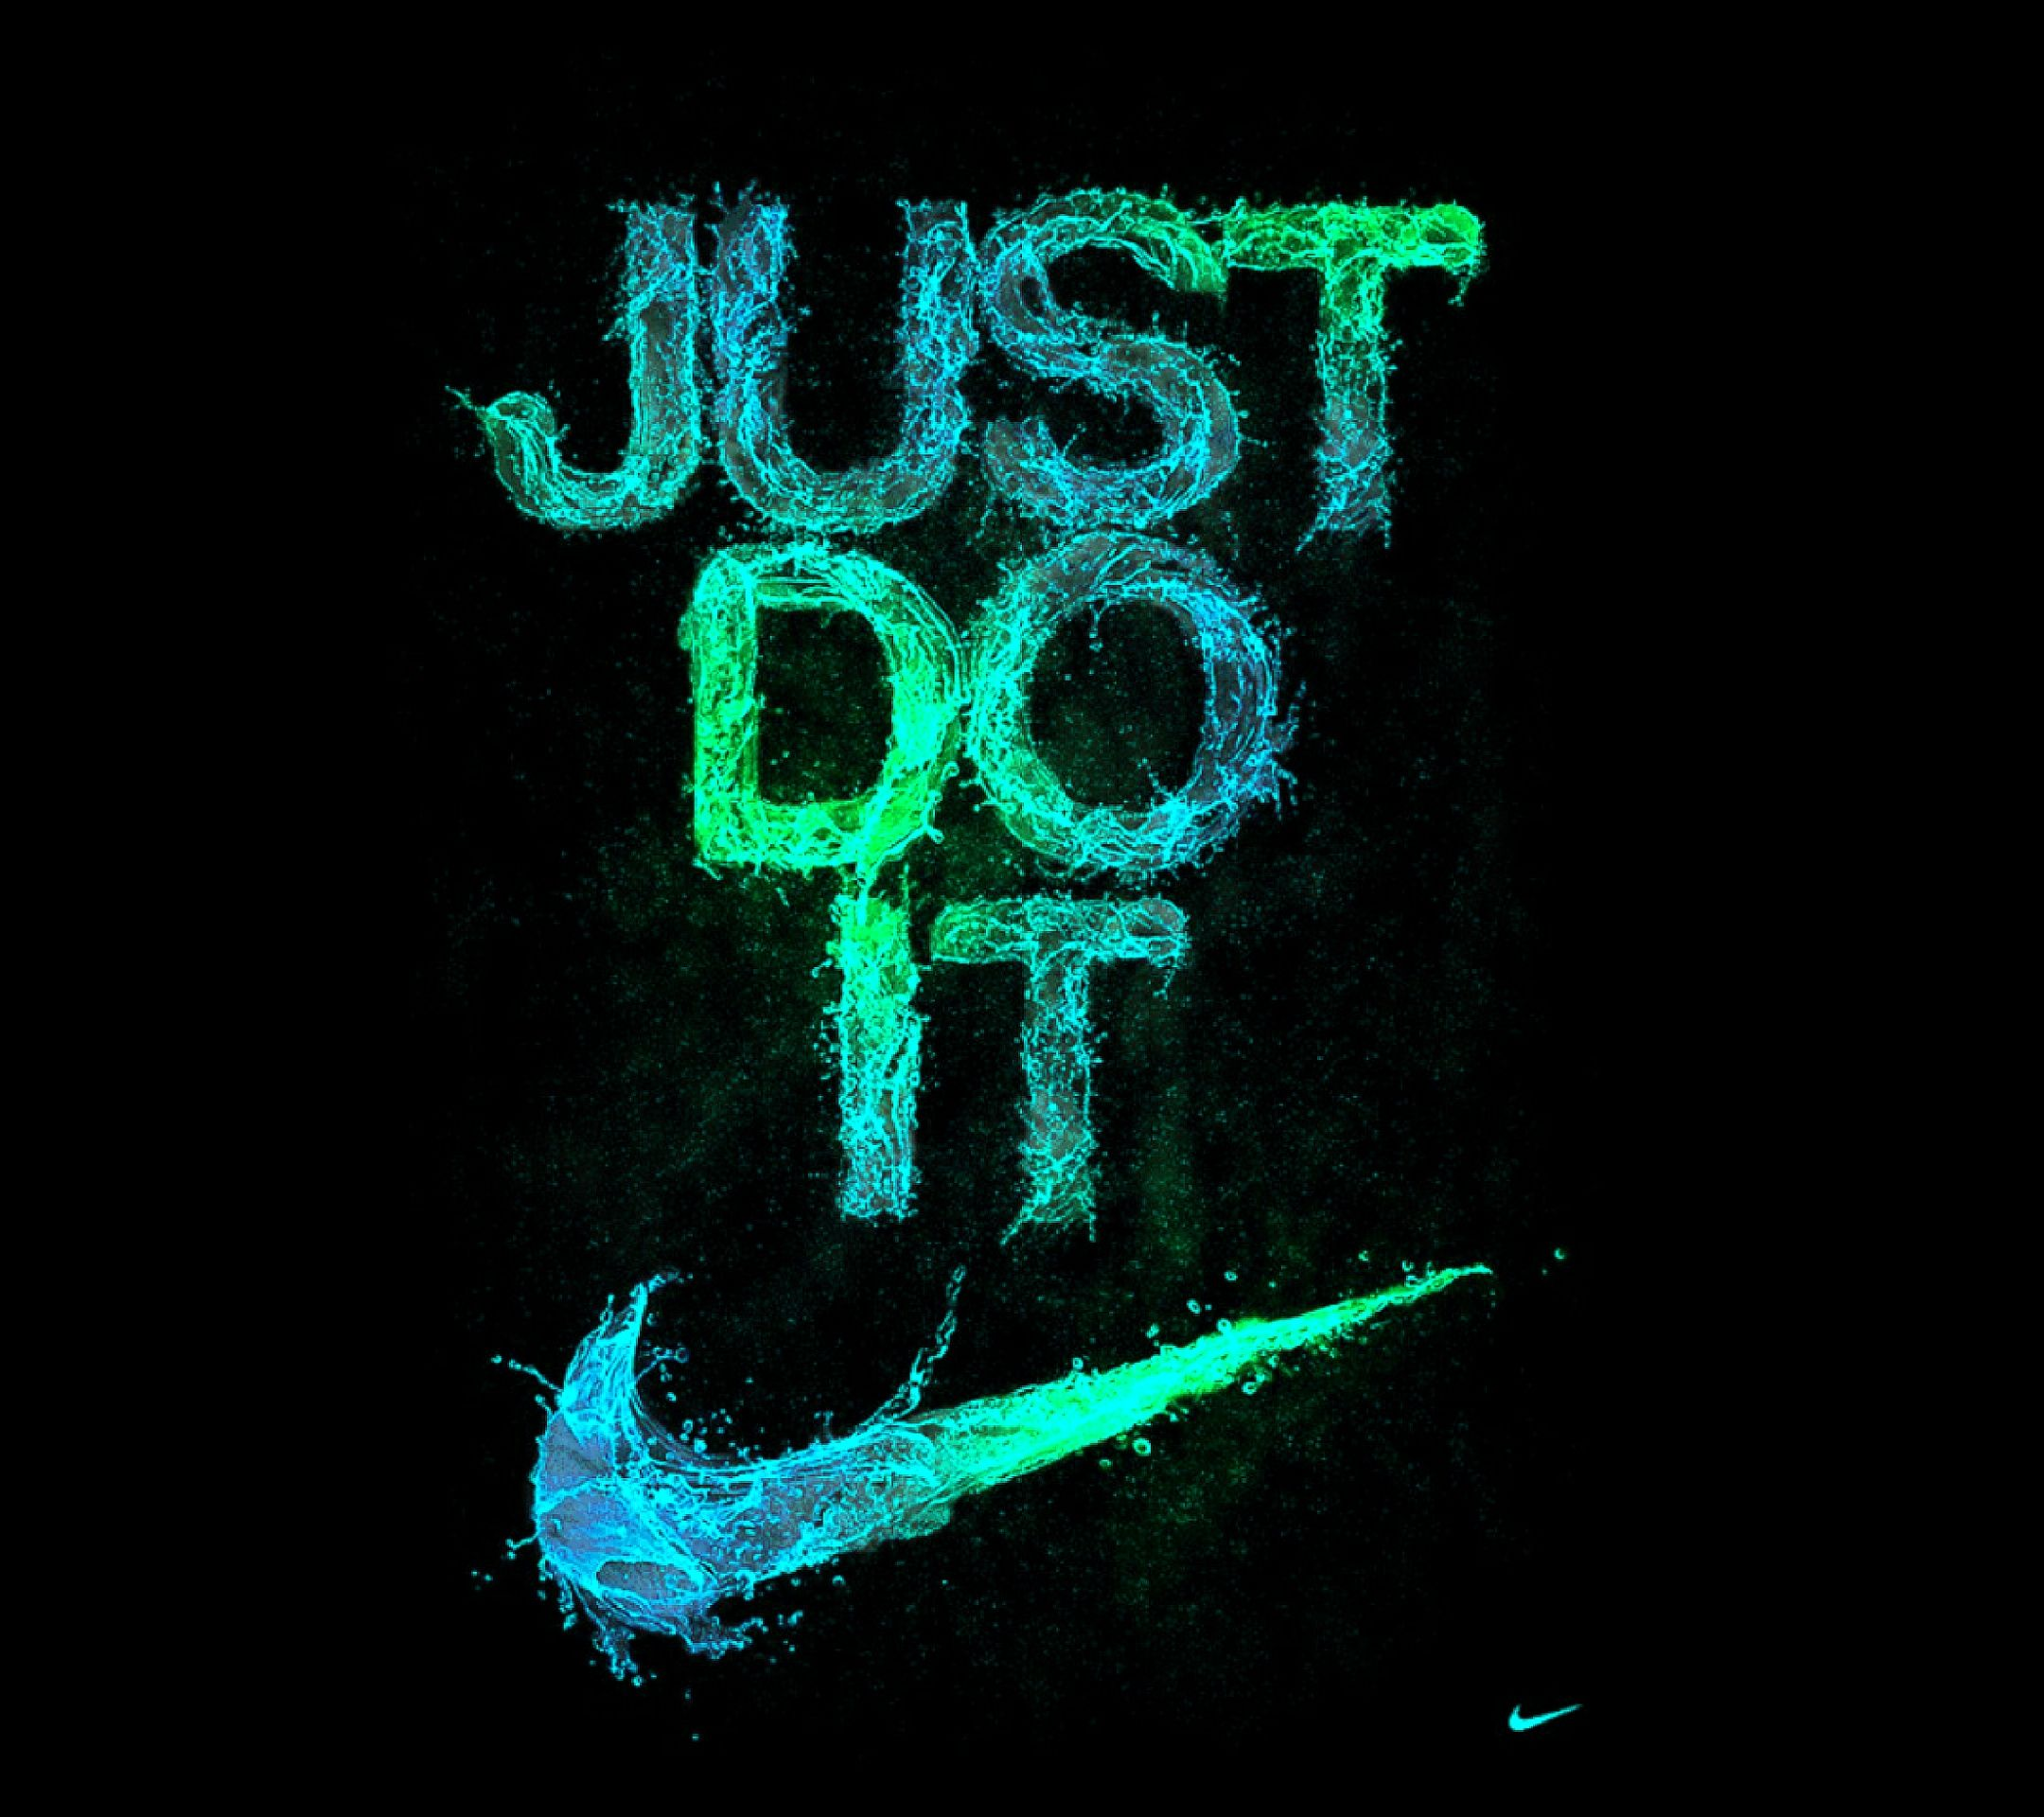 Popular Wallpaper Logo Nike - b433f1b0bc755137459b62e3daf28148  Photograph_216772.jpg